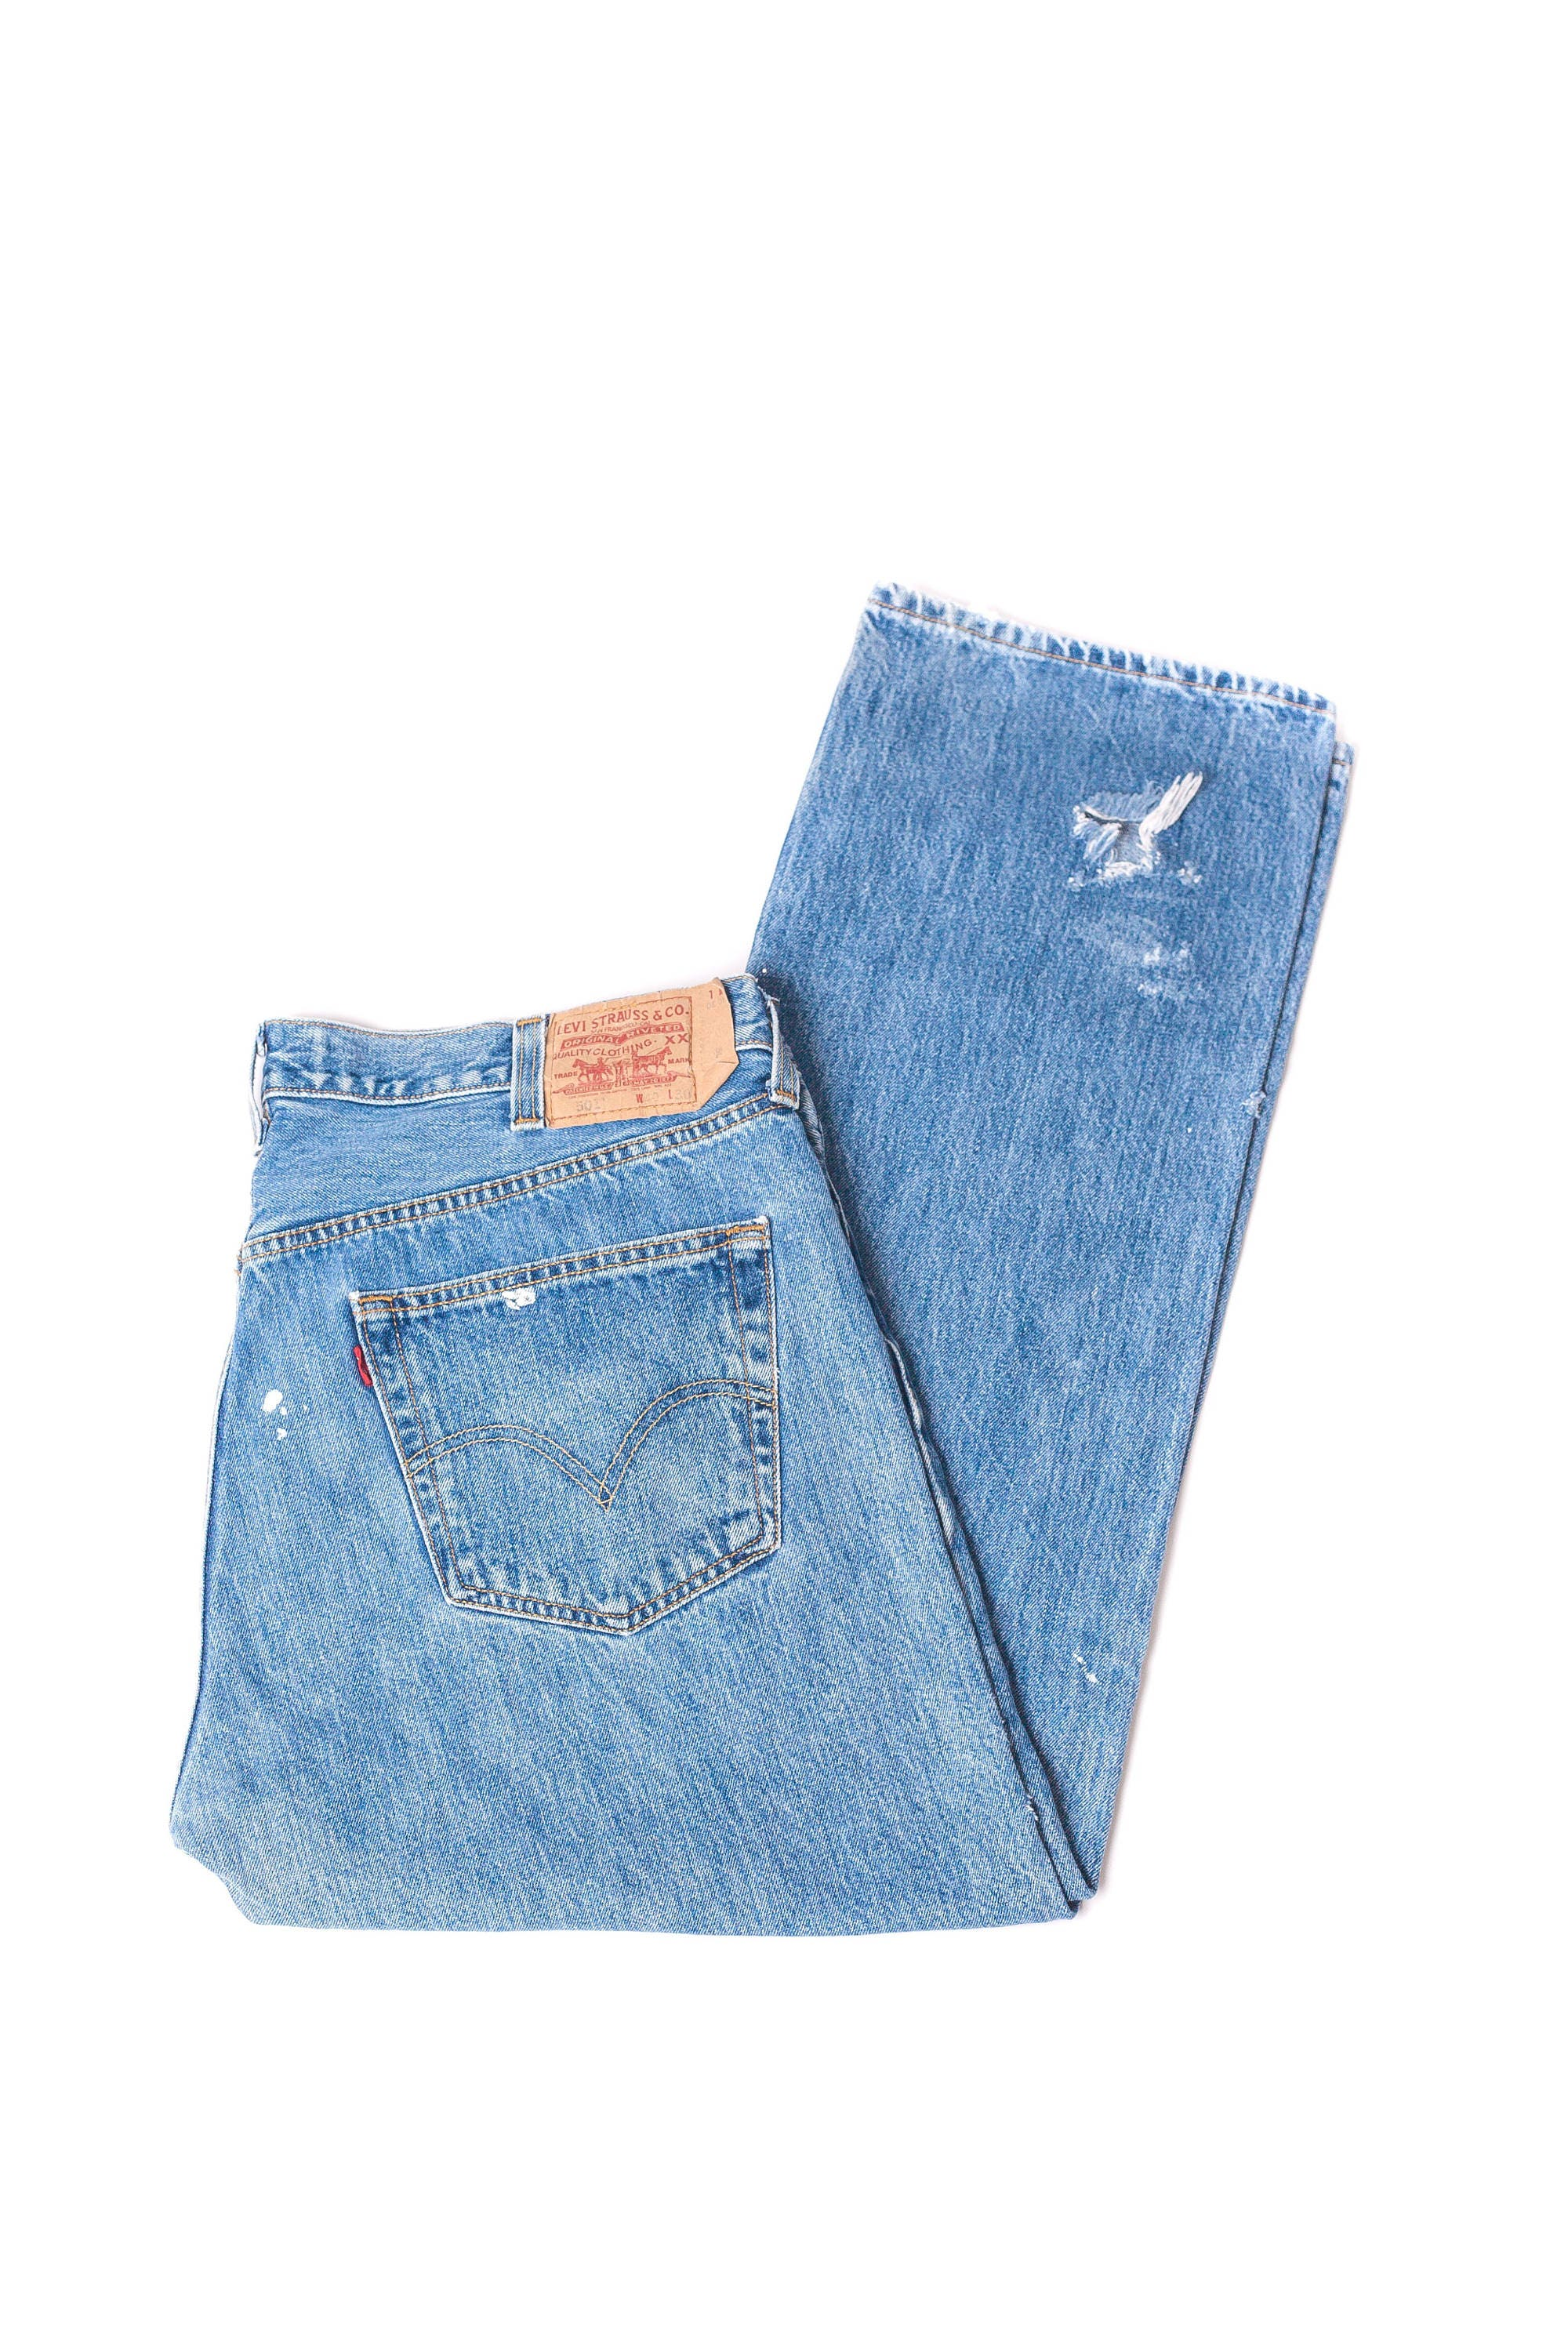 90s dad jean shorts